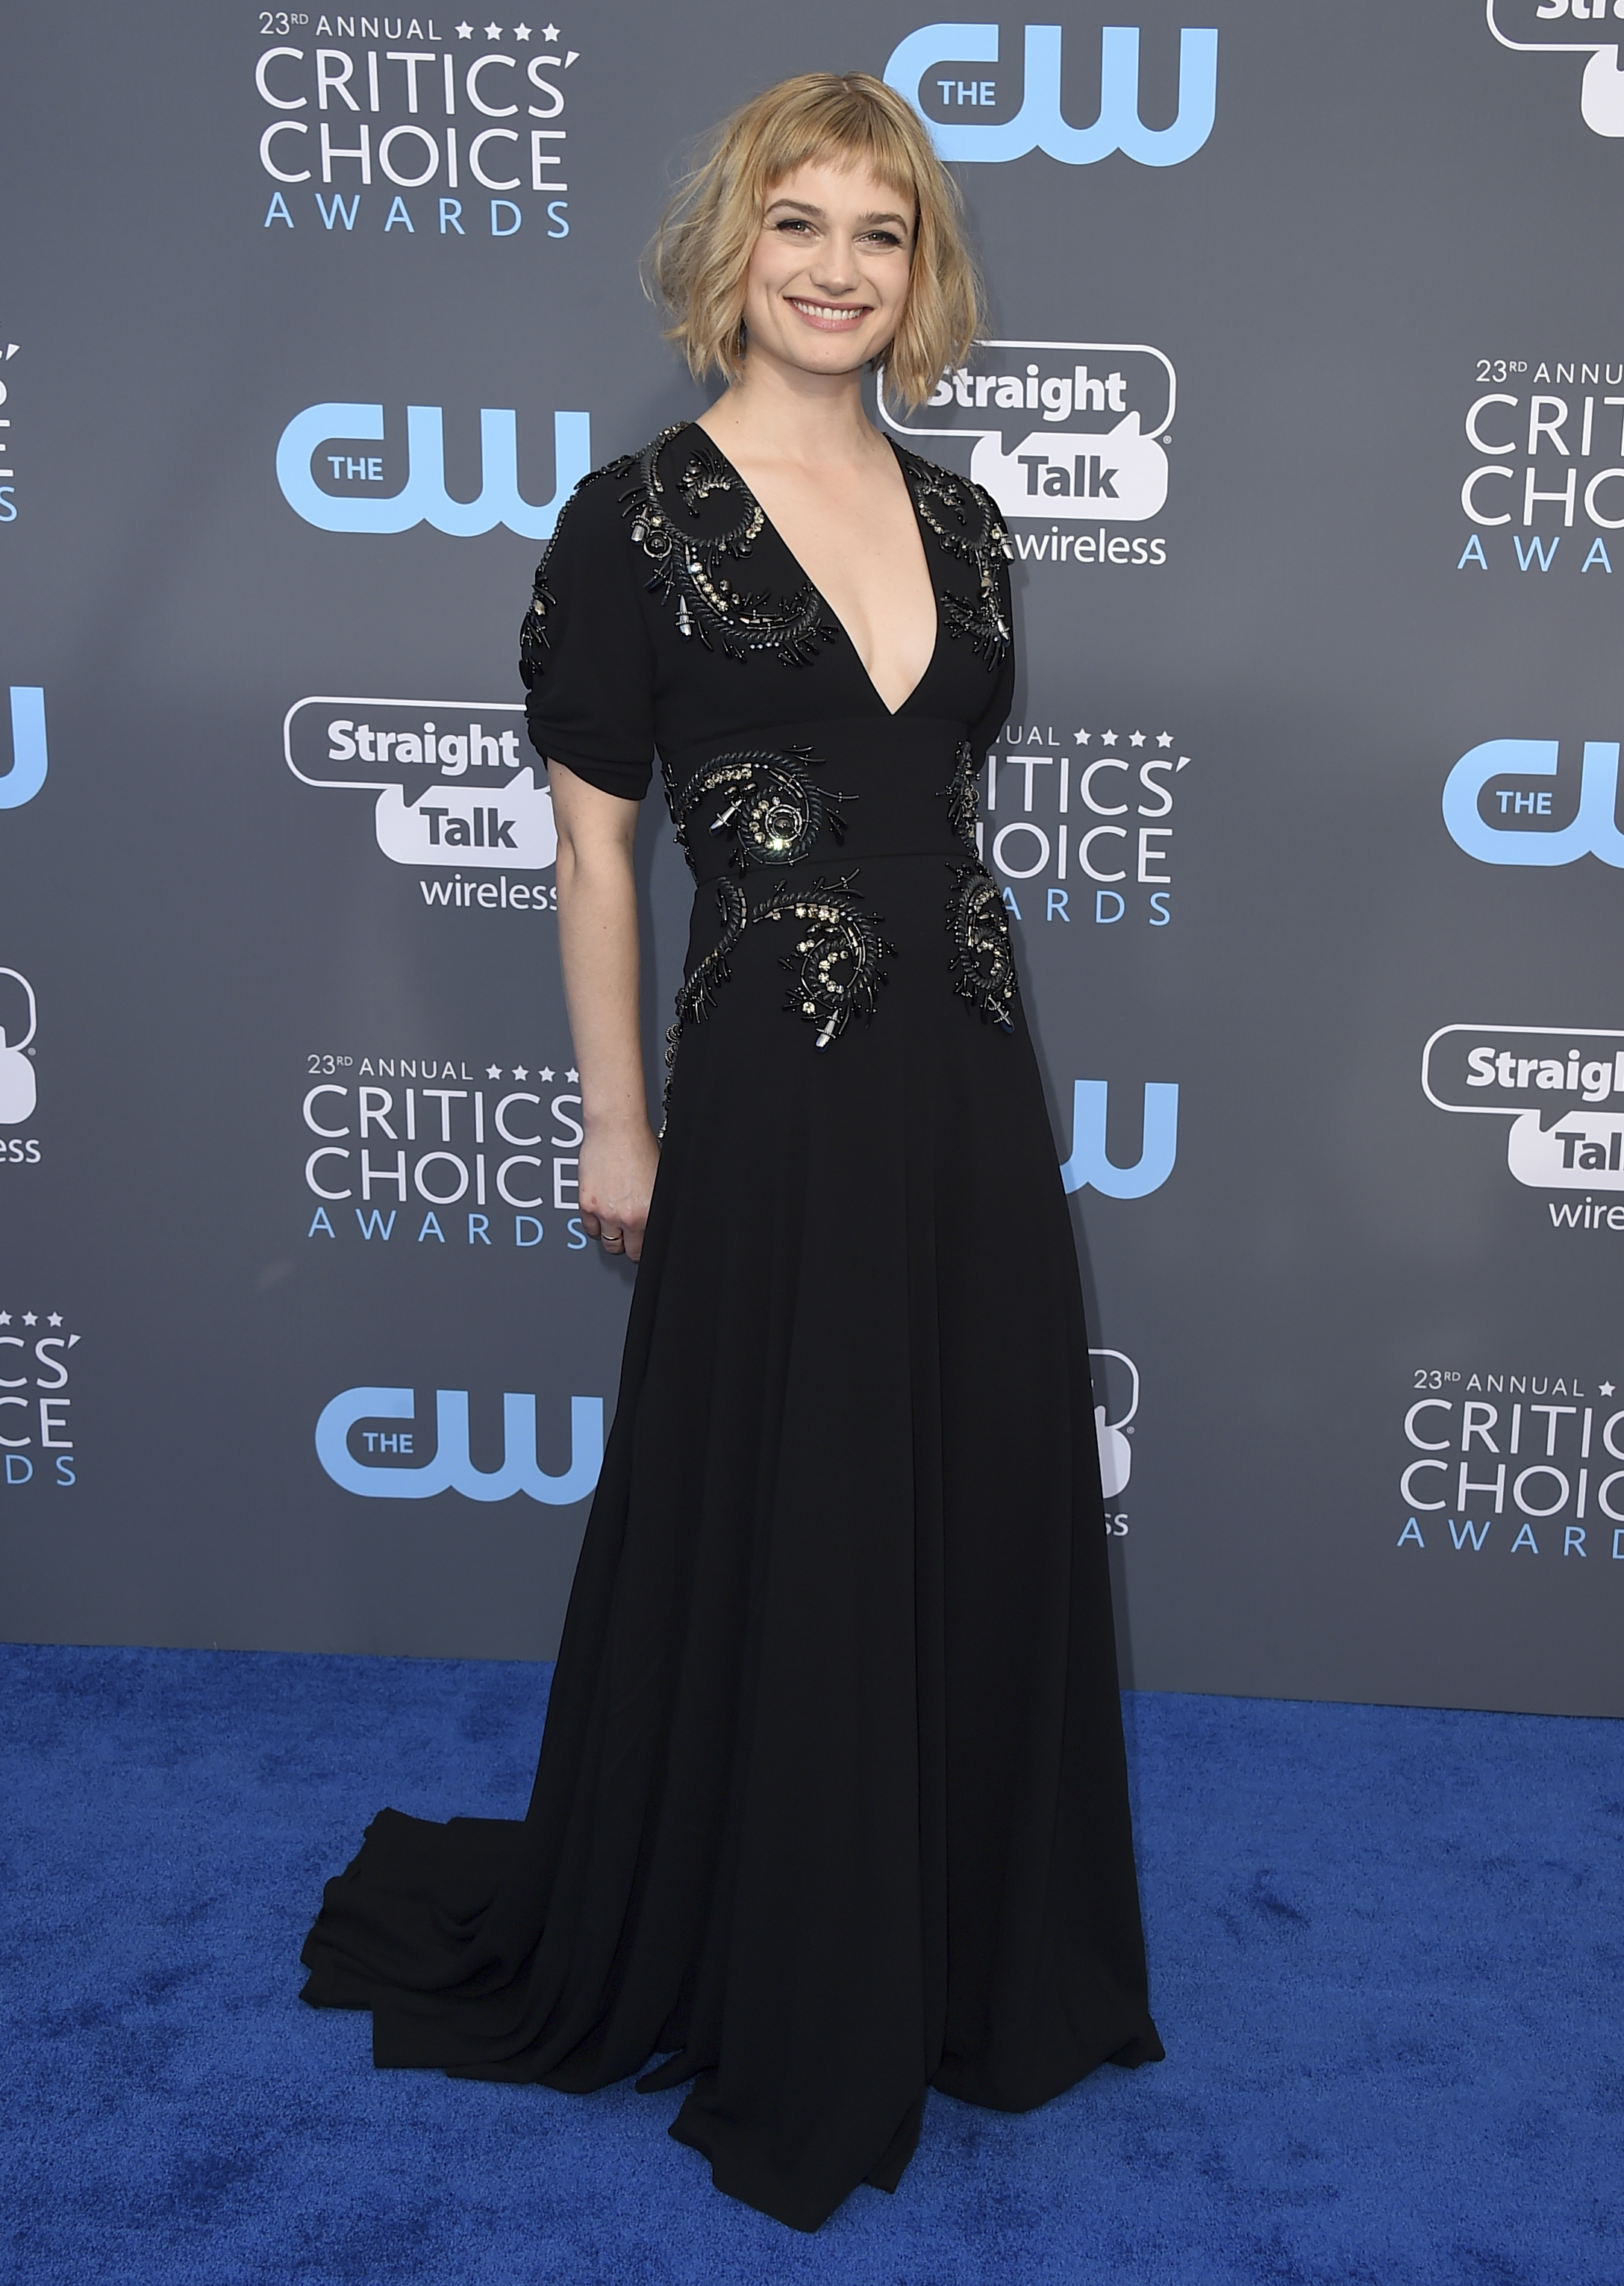 <div class='meta'><div class='origin-logo' data-origin='AP'></div><span class='caption-text' data-credit='Jordan Strauss/Invision/AP'>Alison Sudol arrives at the 23rd annual Critics' Choice Awards at the Barker Hangar on Thursday, Jan. 11, 2018, in Santa Monica, Calif.</span></div>